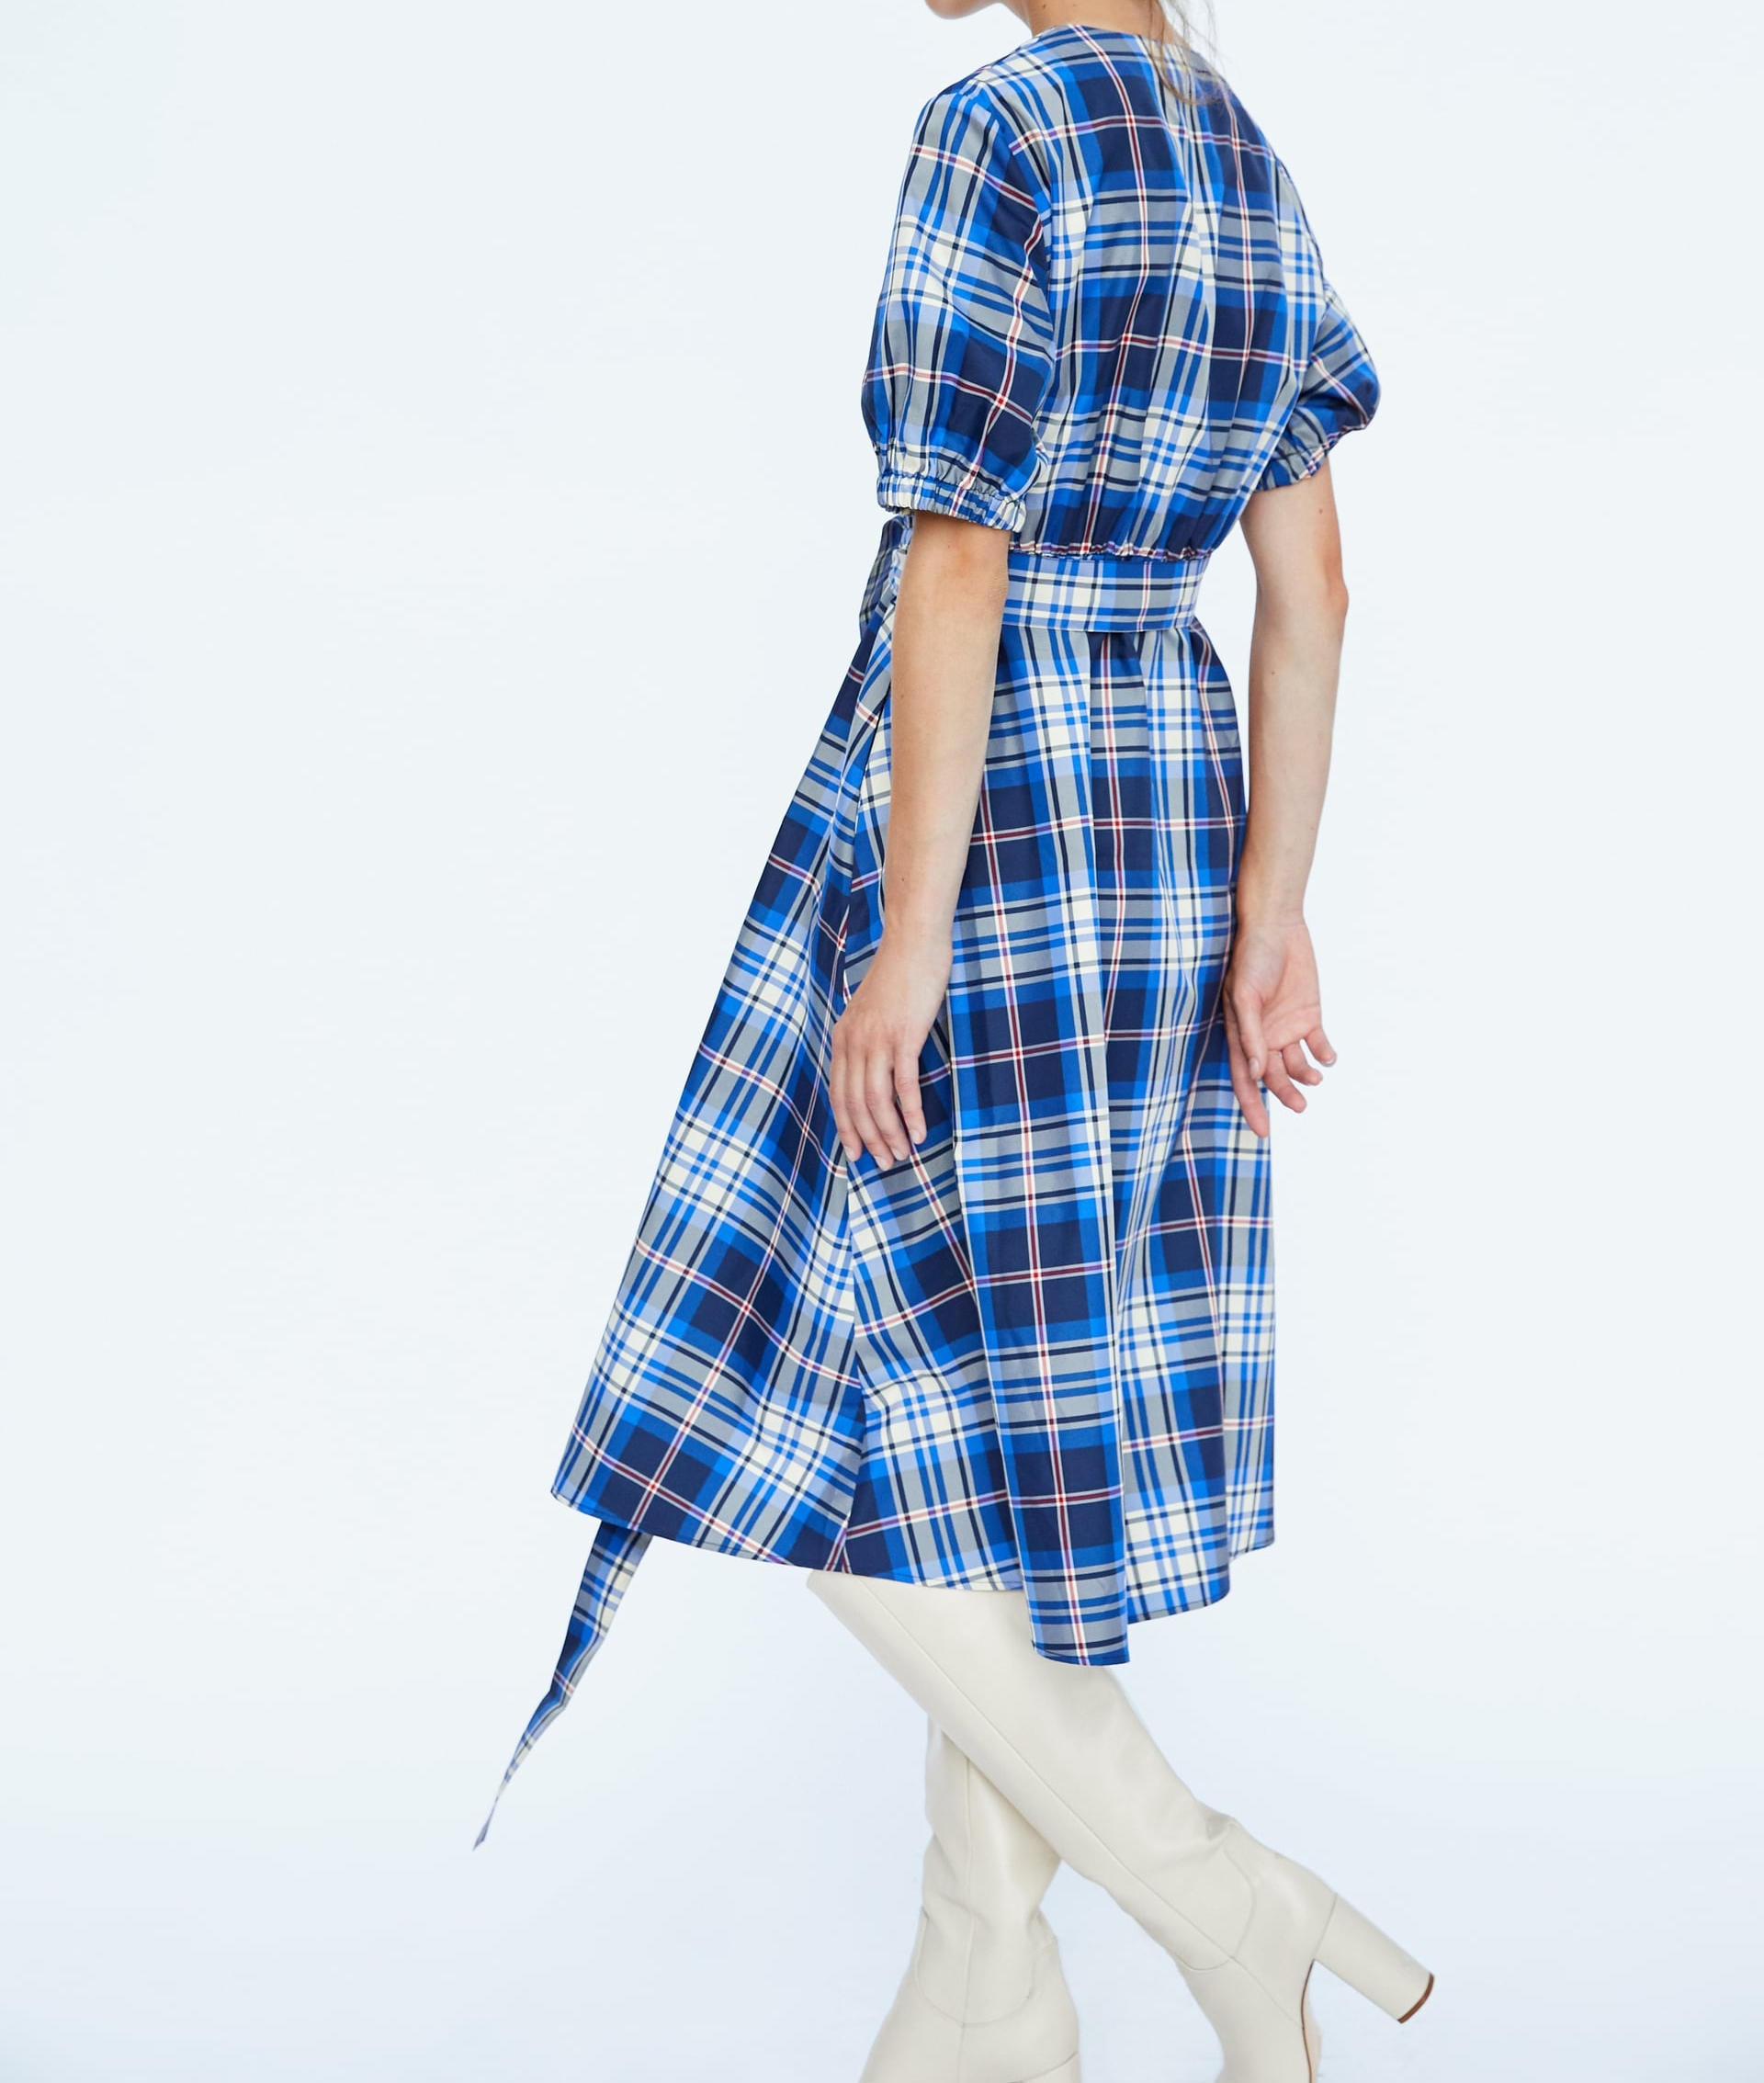 Zara Plaid Taffeta Dress